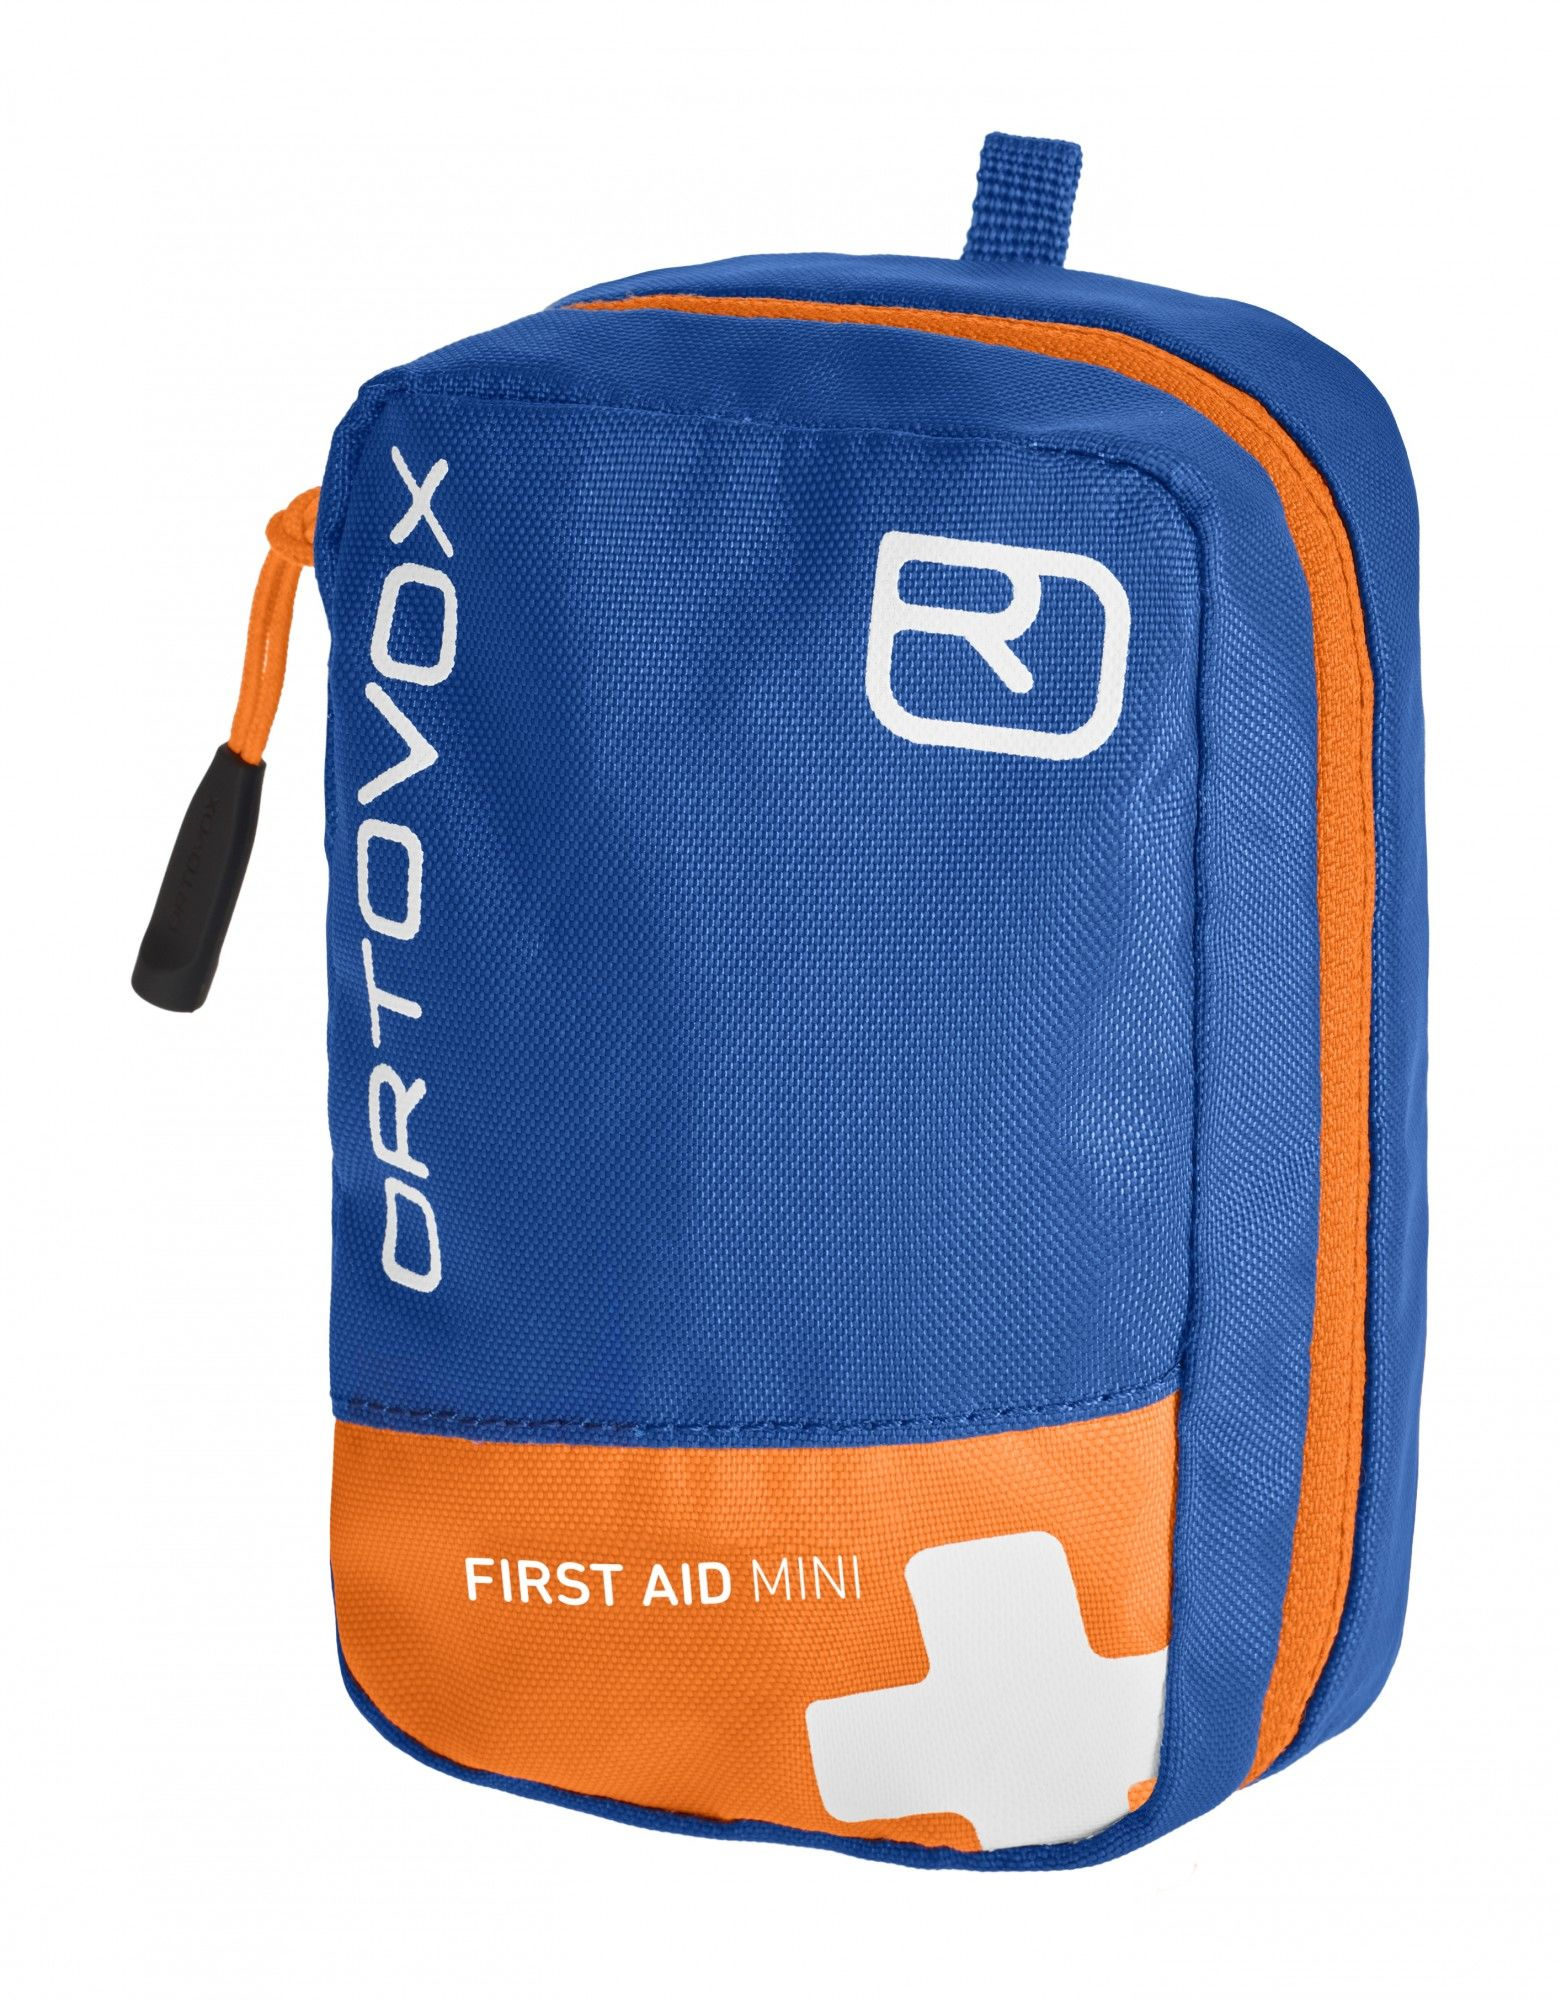 Ortovox First AID Mini Blau, One Size -Farbe Safety Blue, One Size